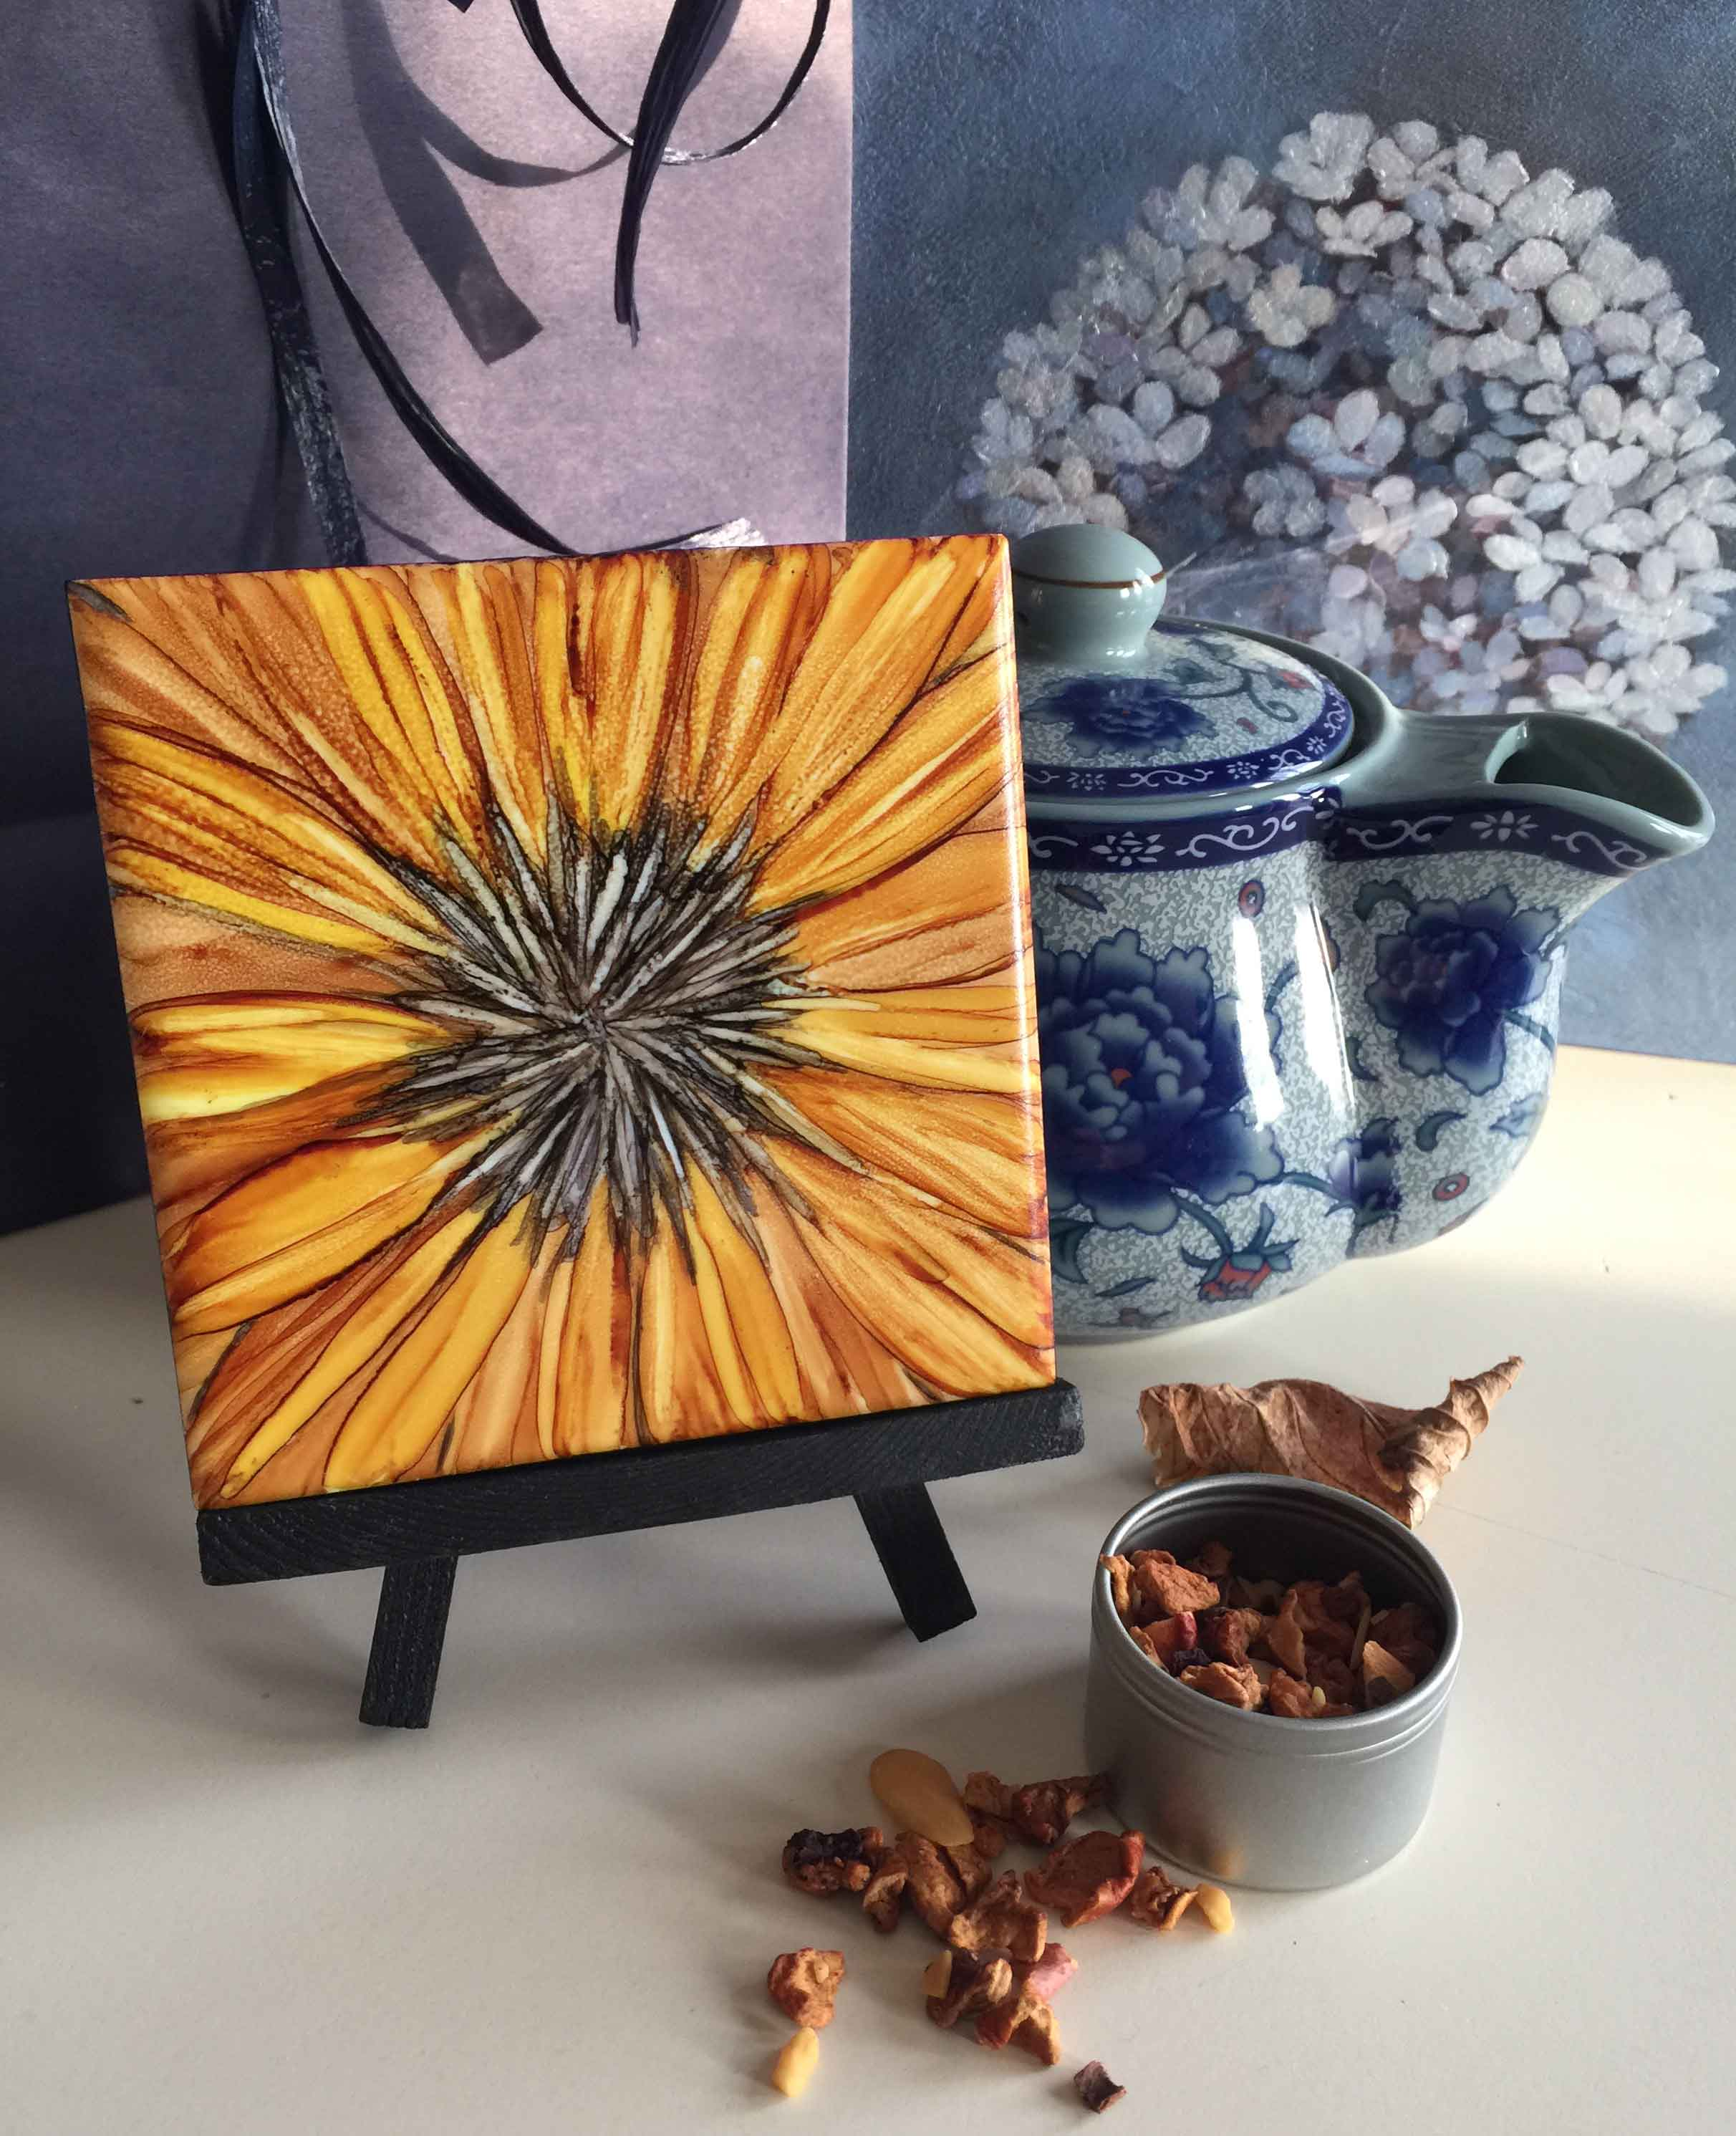 Creating with Alcohol Inks is unique, vibrant and fun. Using brushes, I'm excited to share how captivating it is to explore this medium on ceramic tile. Known for their vivid colours and intriguing patterns, we'll play with some techniques and discover just how endless the possibilities are.   Thursday May 31 , 2018, 6:30 to 9:00pm  Artworld Fine Art Gallery , 365 Evans Avenue, Etobicoke, Ontario M8Z 1K2, 416.620.0500 Register at http://www.artworldfineart.com/event/art-wine-paint-night-with-sandra-robson/